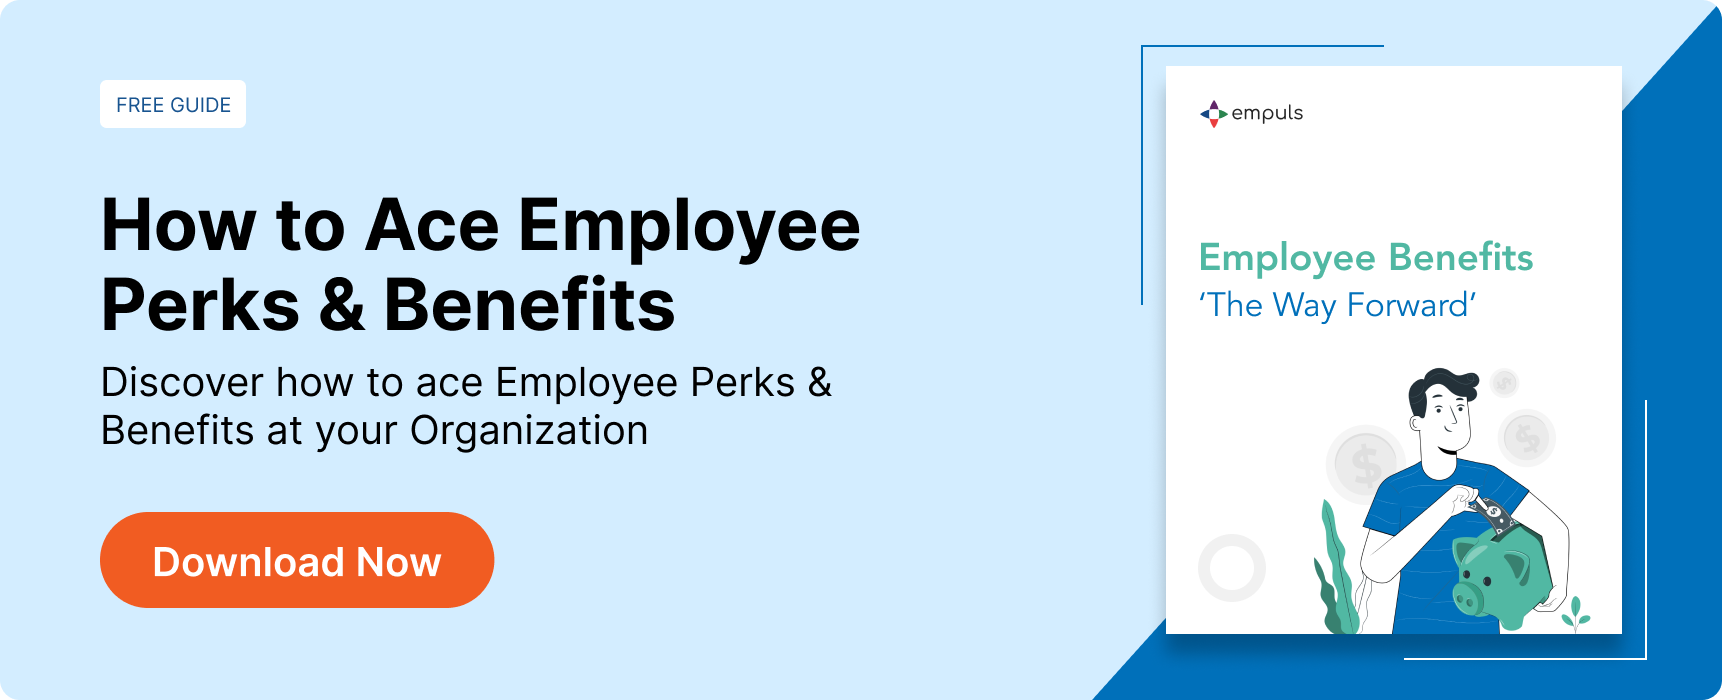 Guide to ace employee perks and benefits